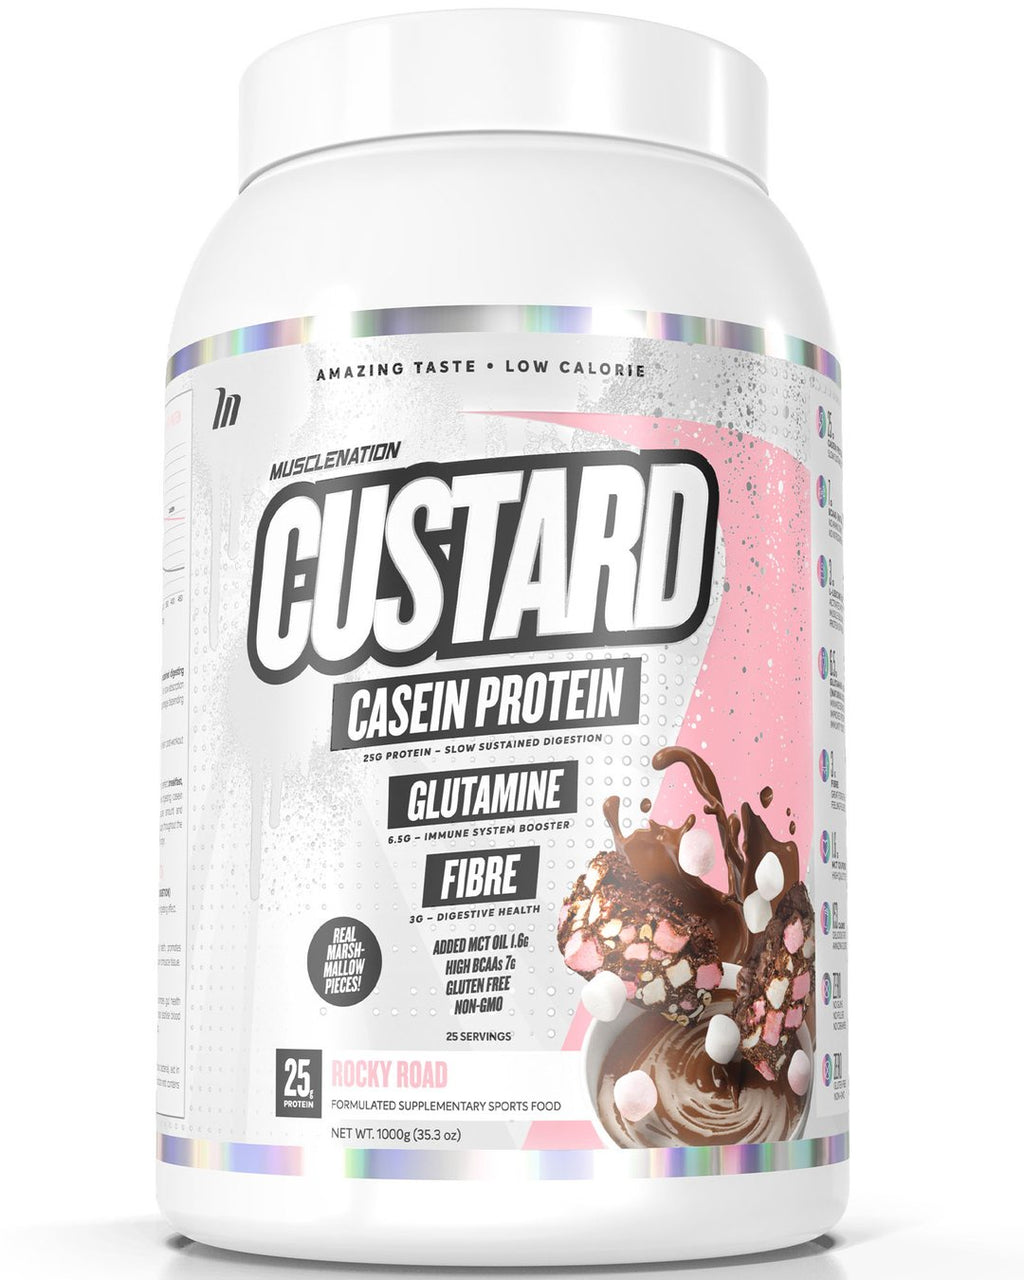 CUSTARD CASEIN PROTEIN ROCKY ROAD (W/ REAL MARSHMALLOW PIECES)